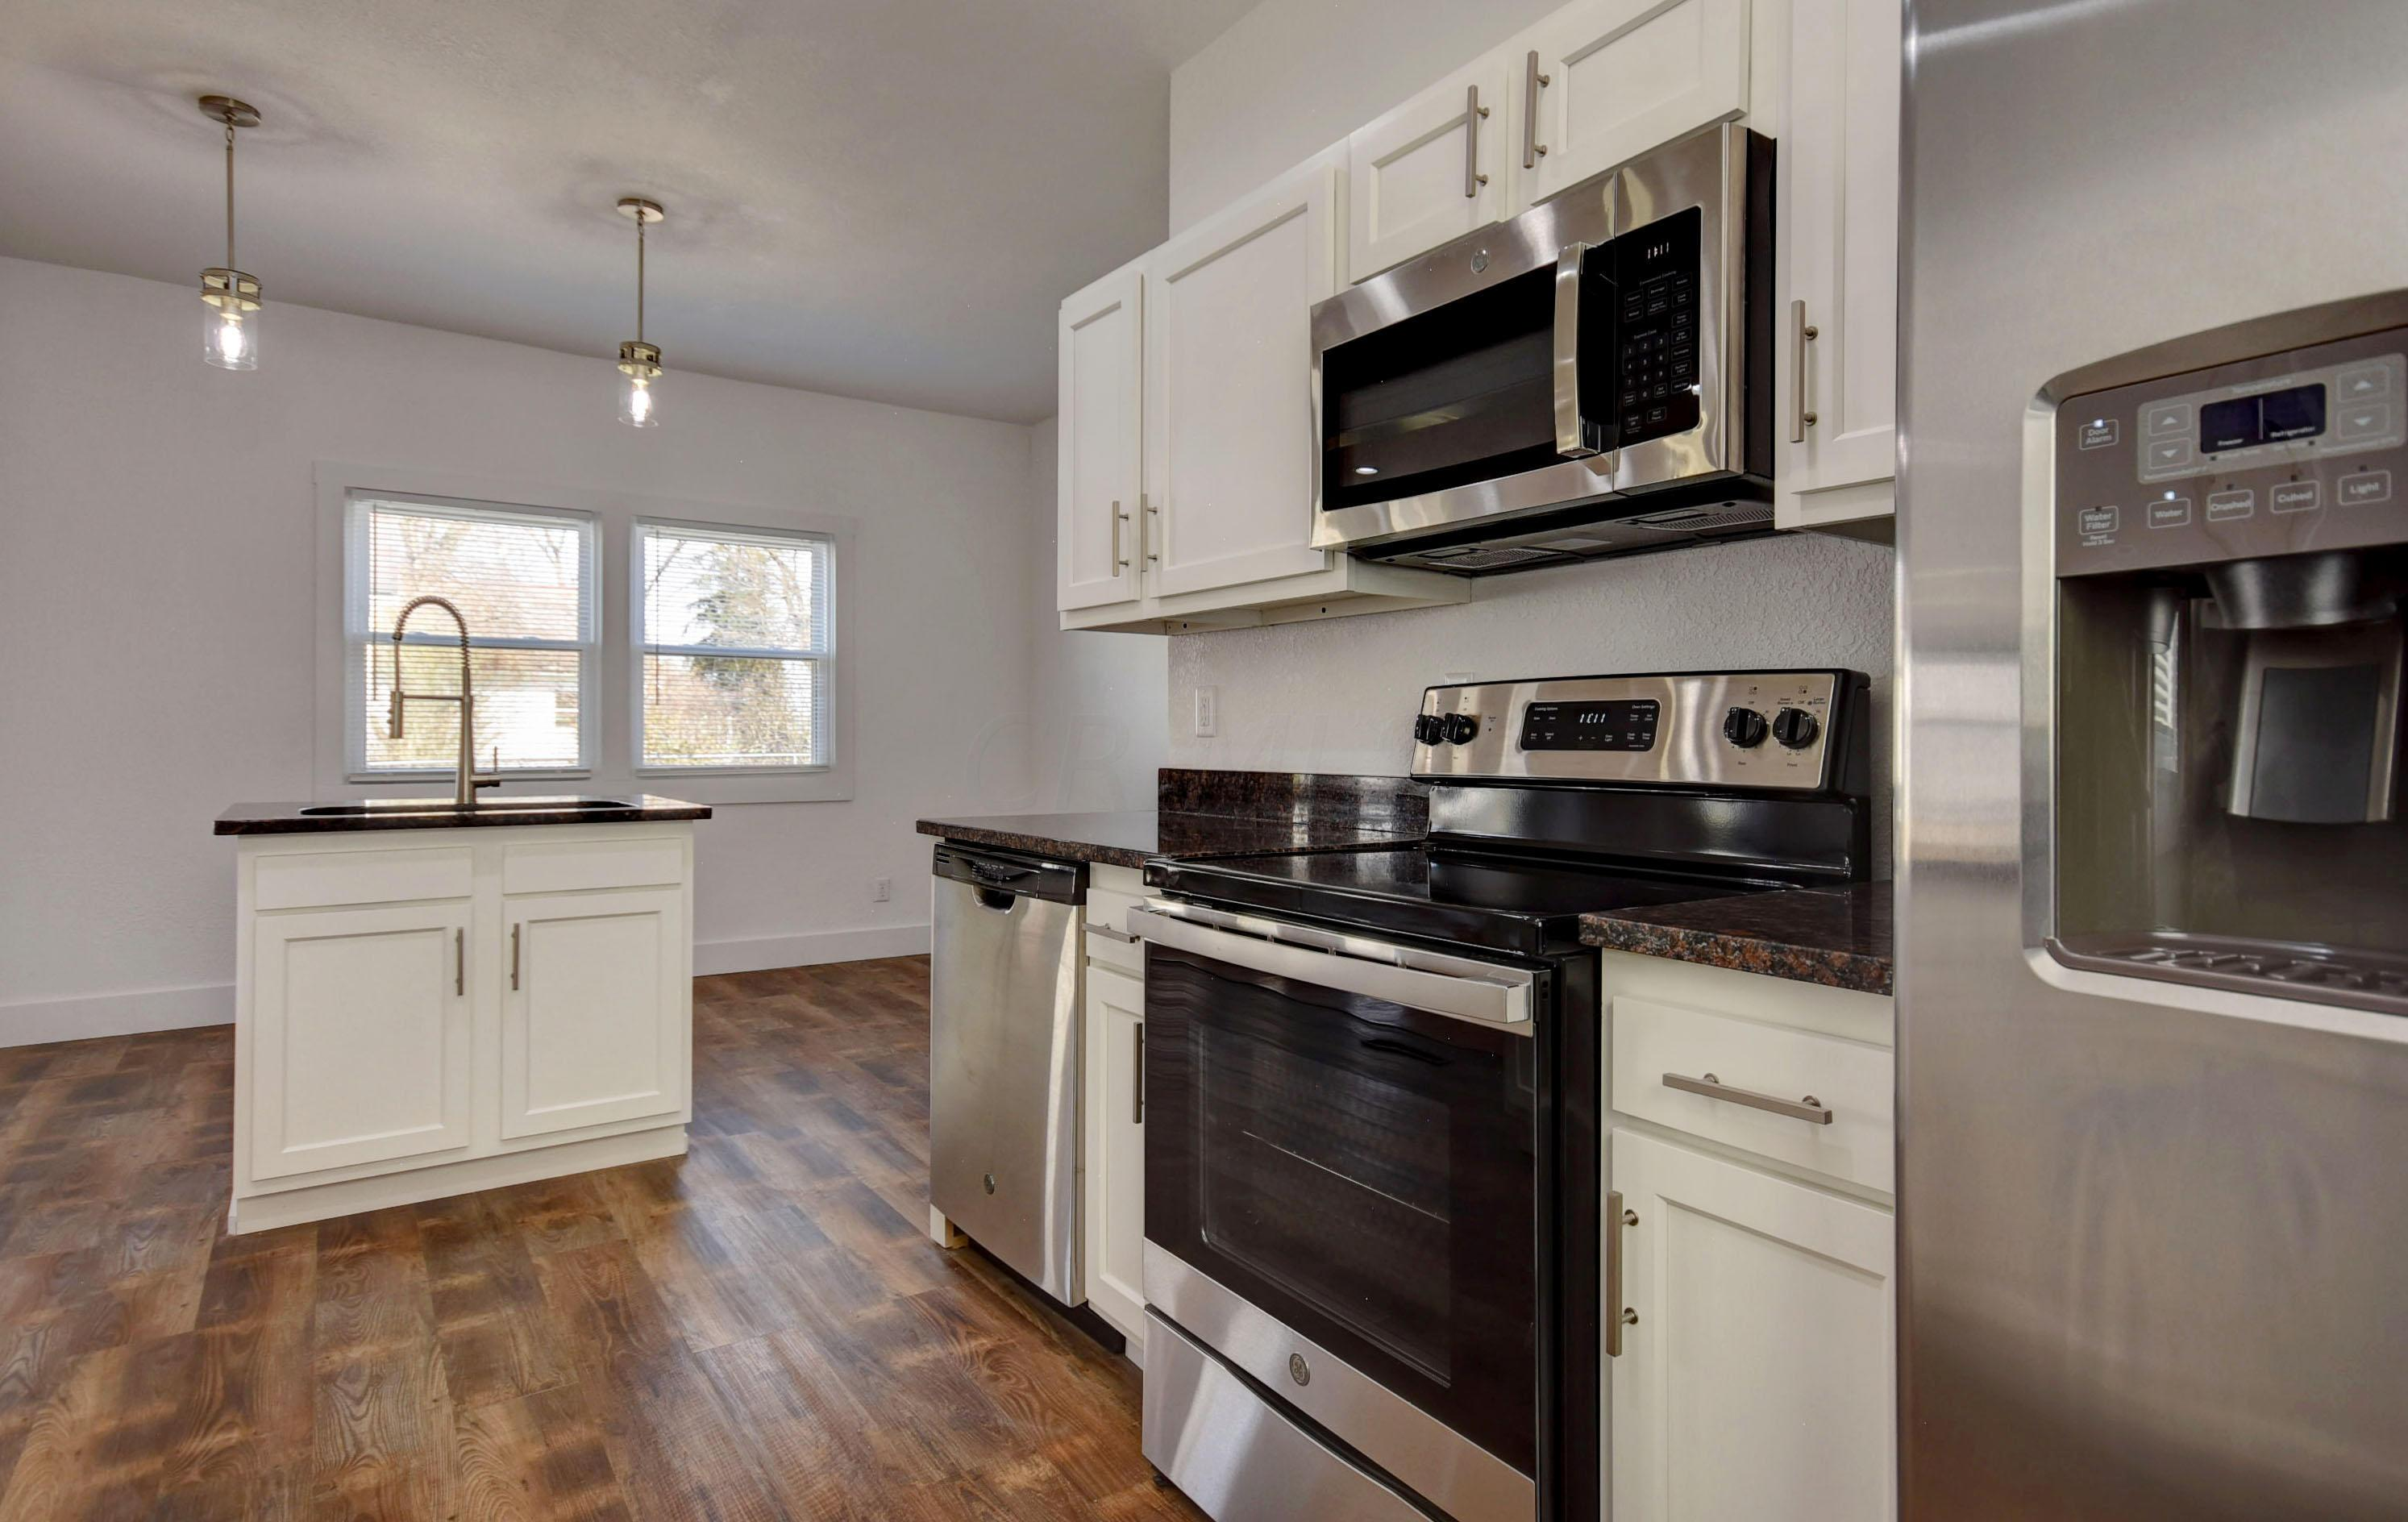 121 National Drive, Newark, Ohio 43055, 3 Bedrooms Bedrooms, ,2 BathroomsBathrooms,Residential,For Sale,National,220041123